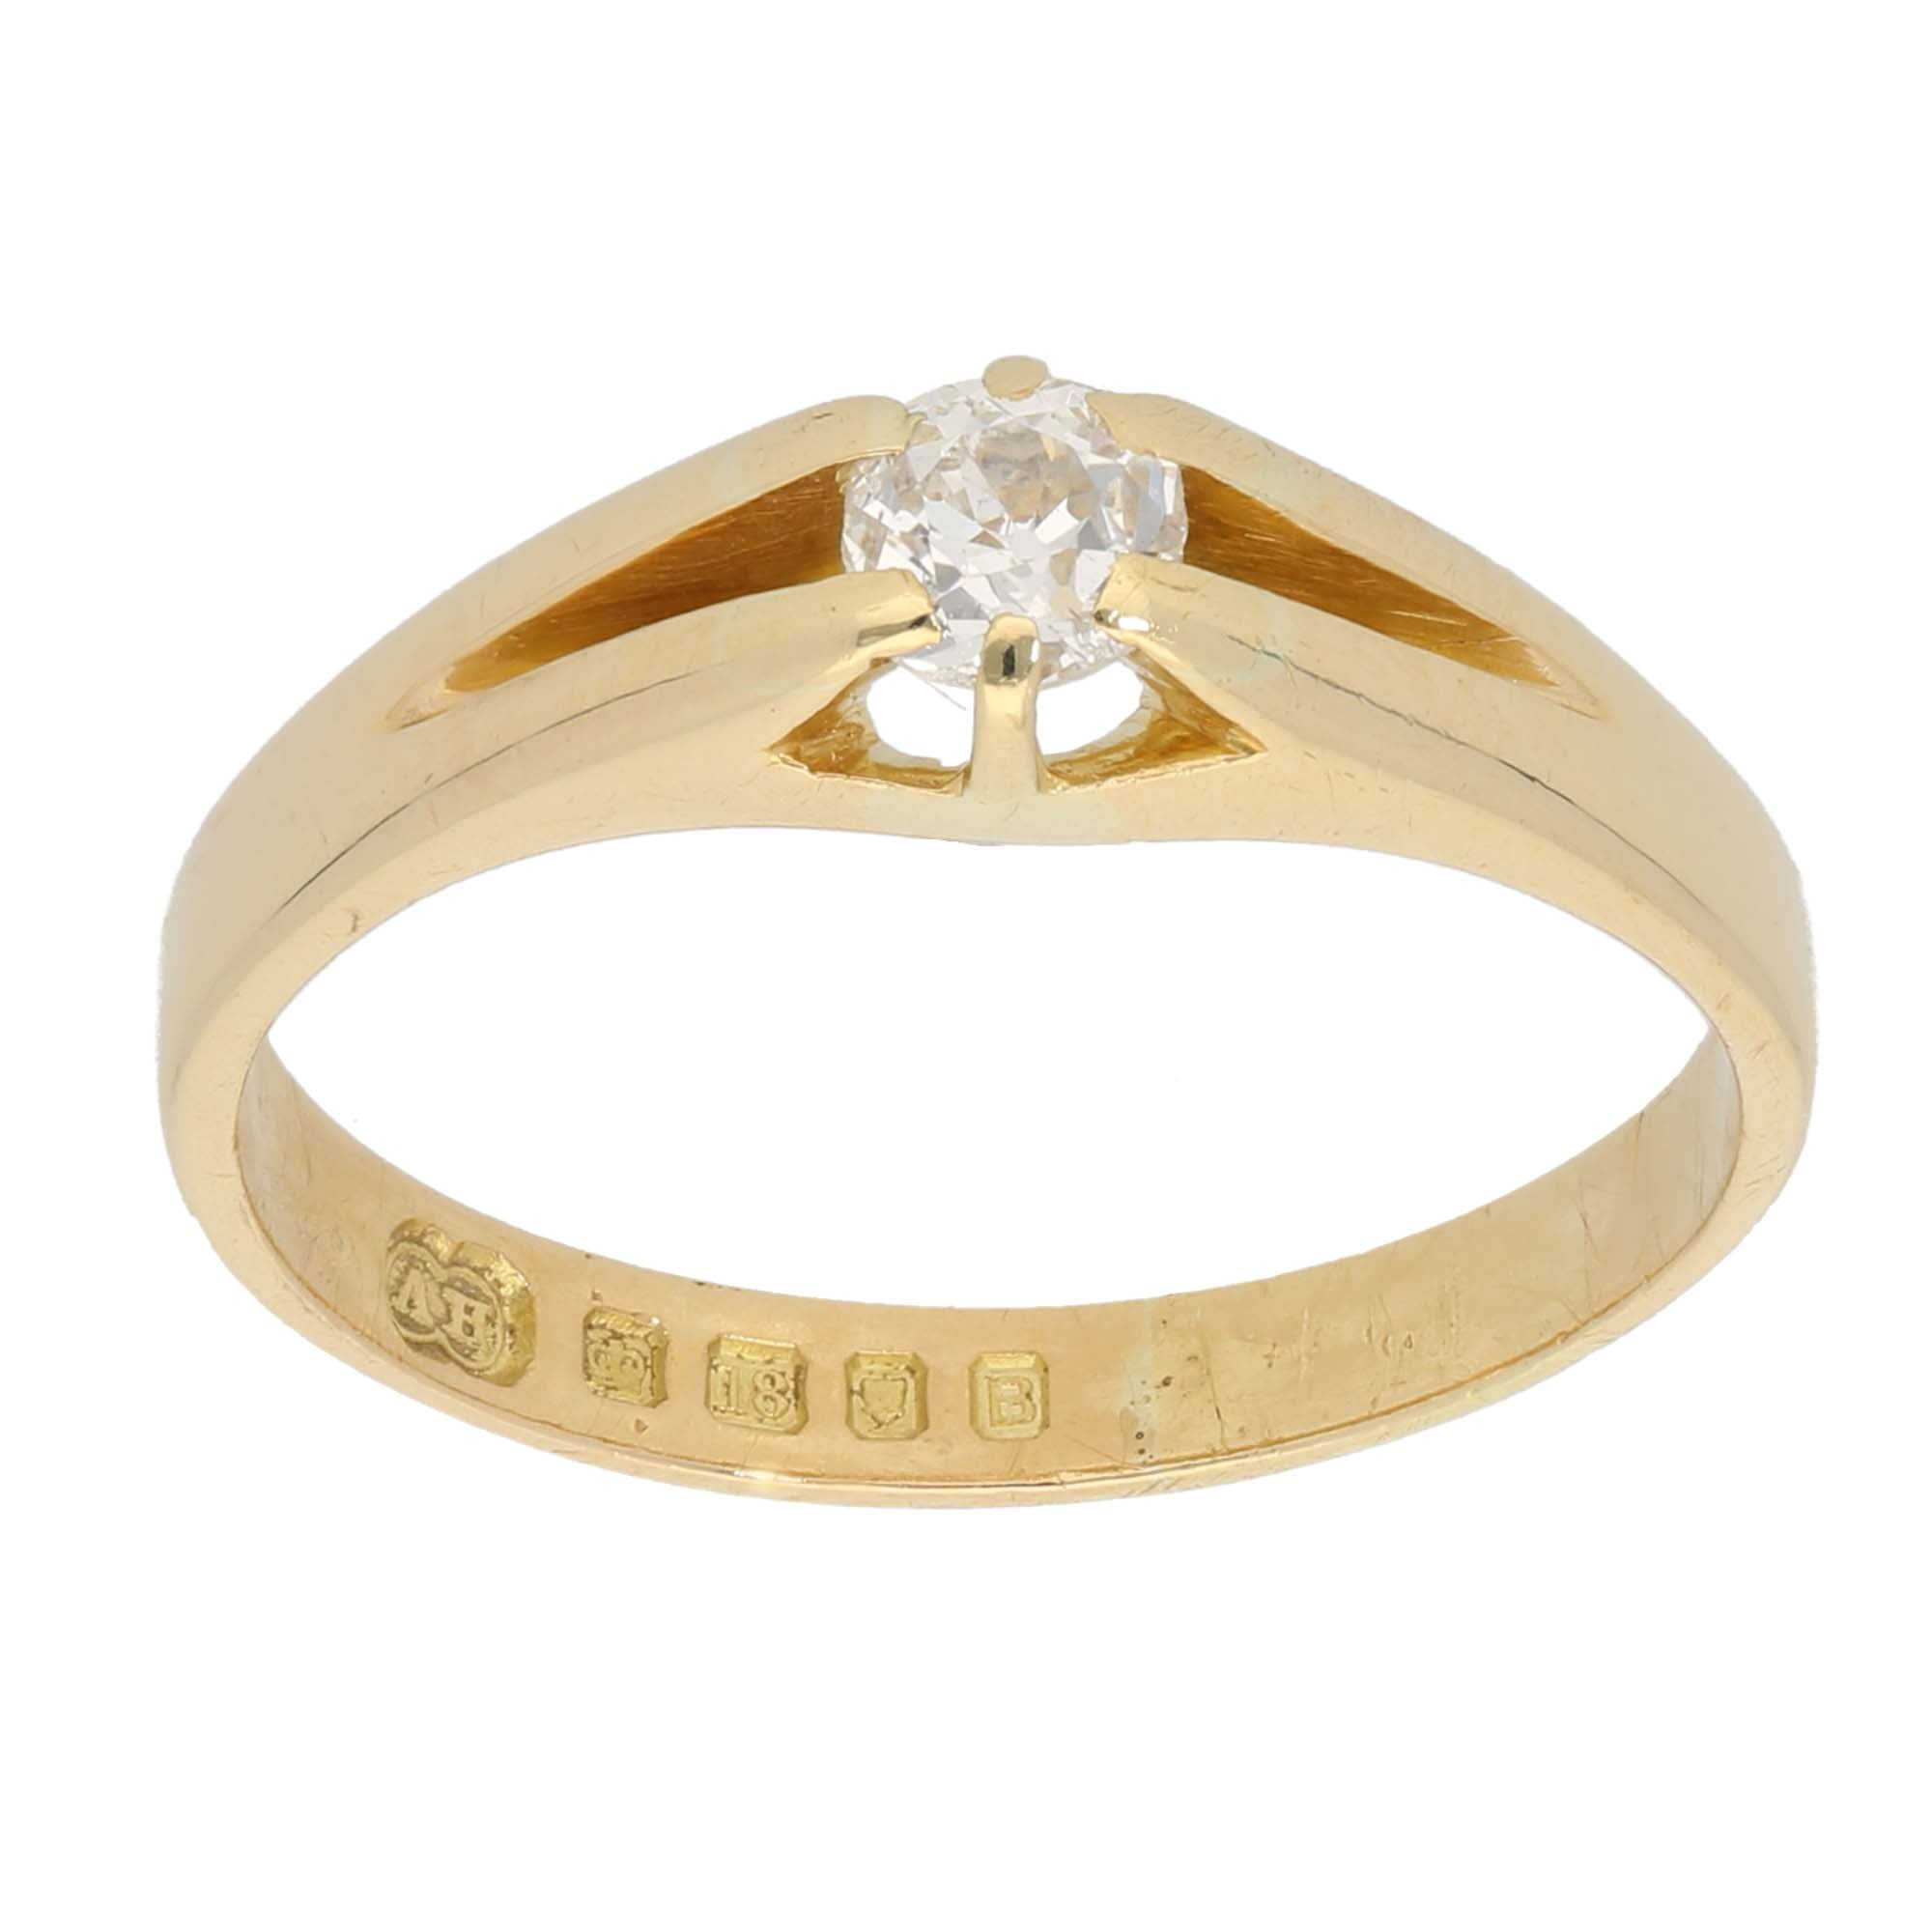 18ct Gold 0.52ct Other Cut Diamond Ladies Solitaire Ring Size W